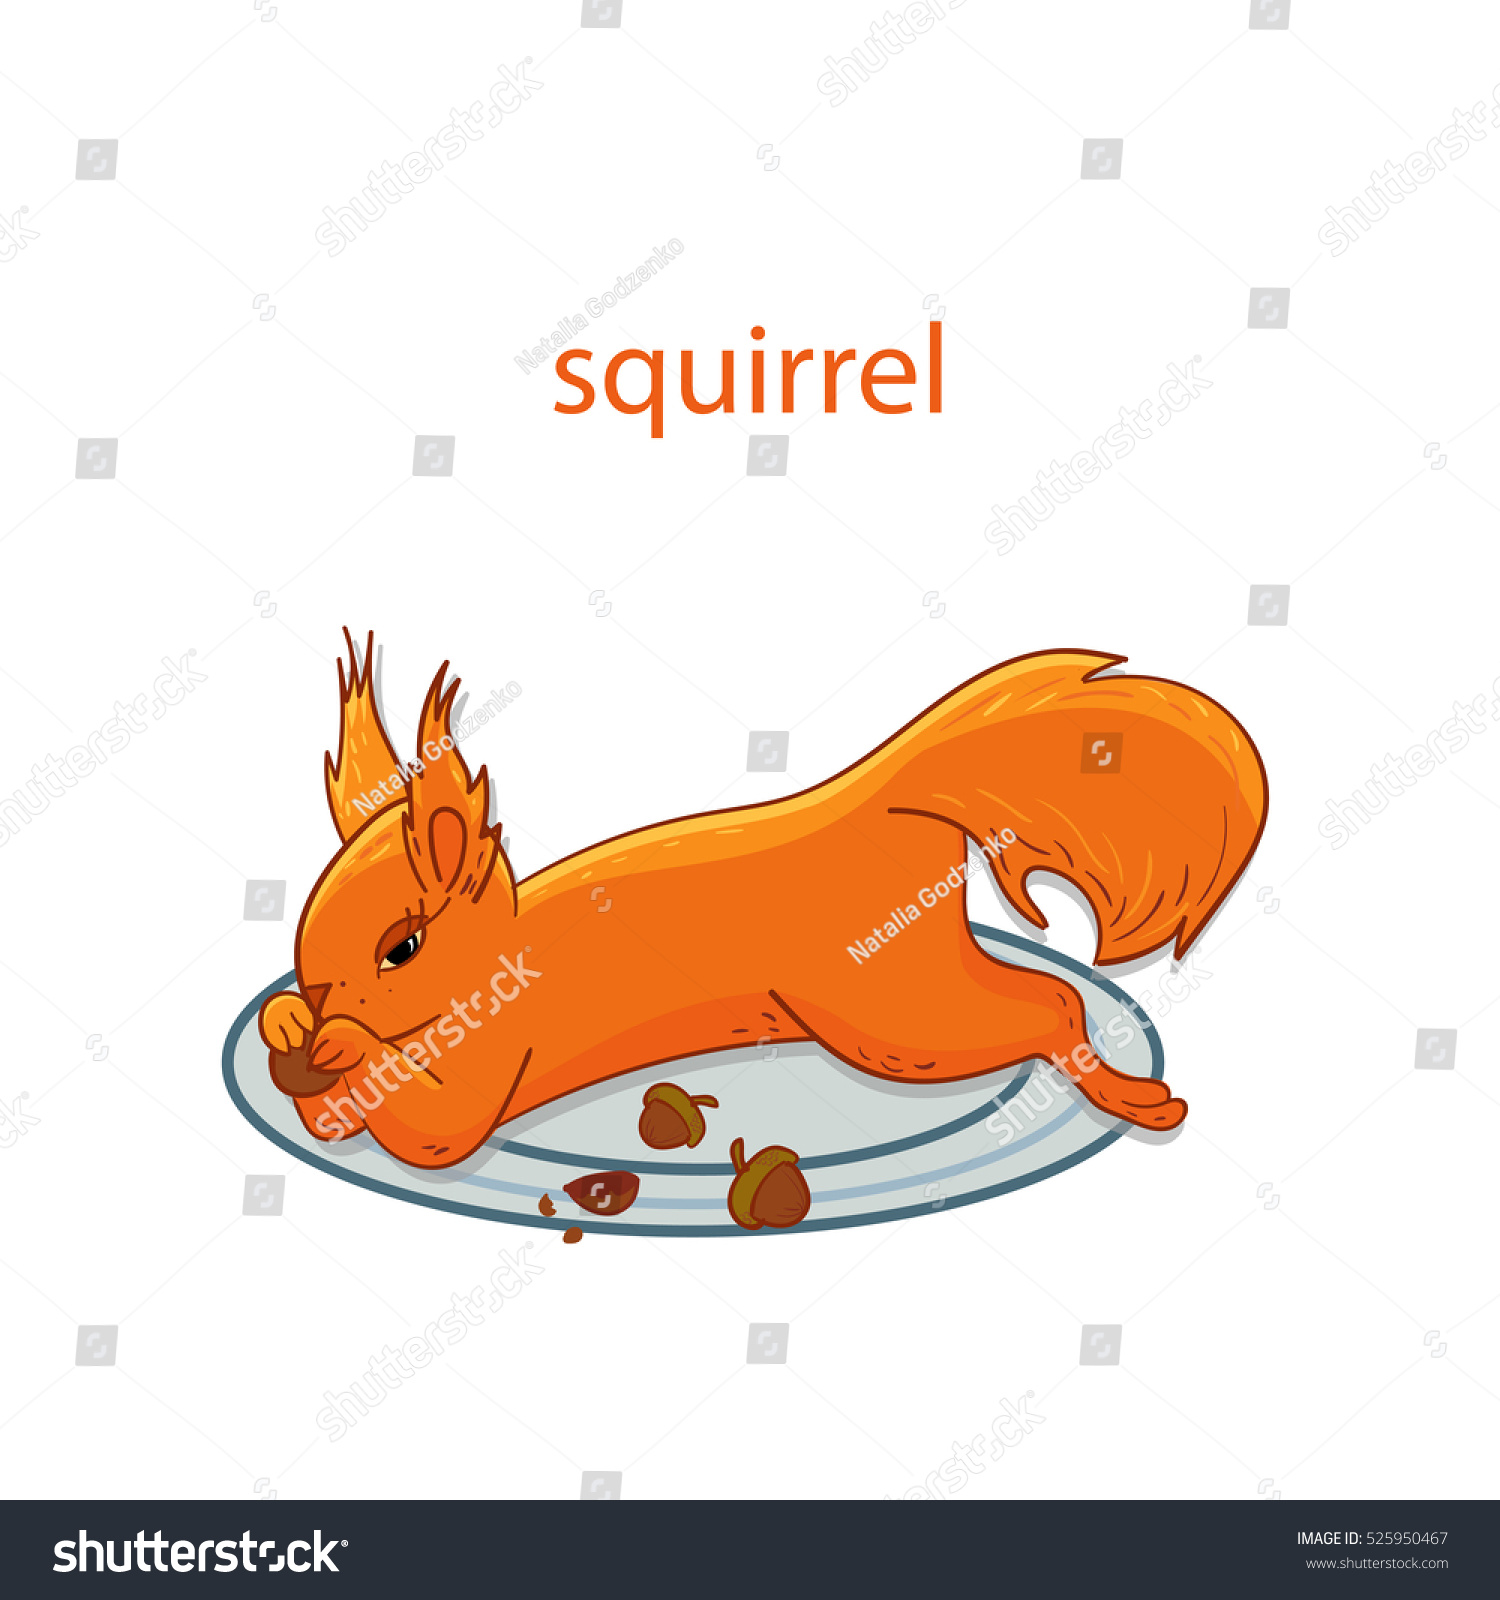 how to draw a squirrel running